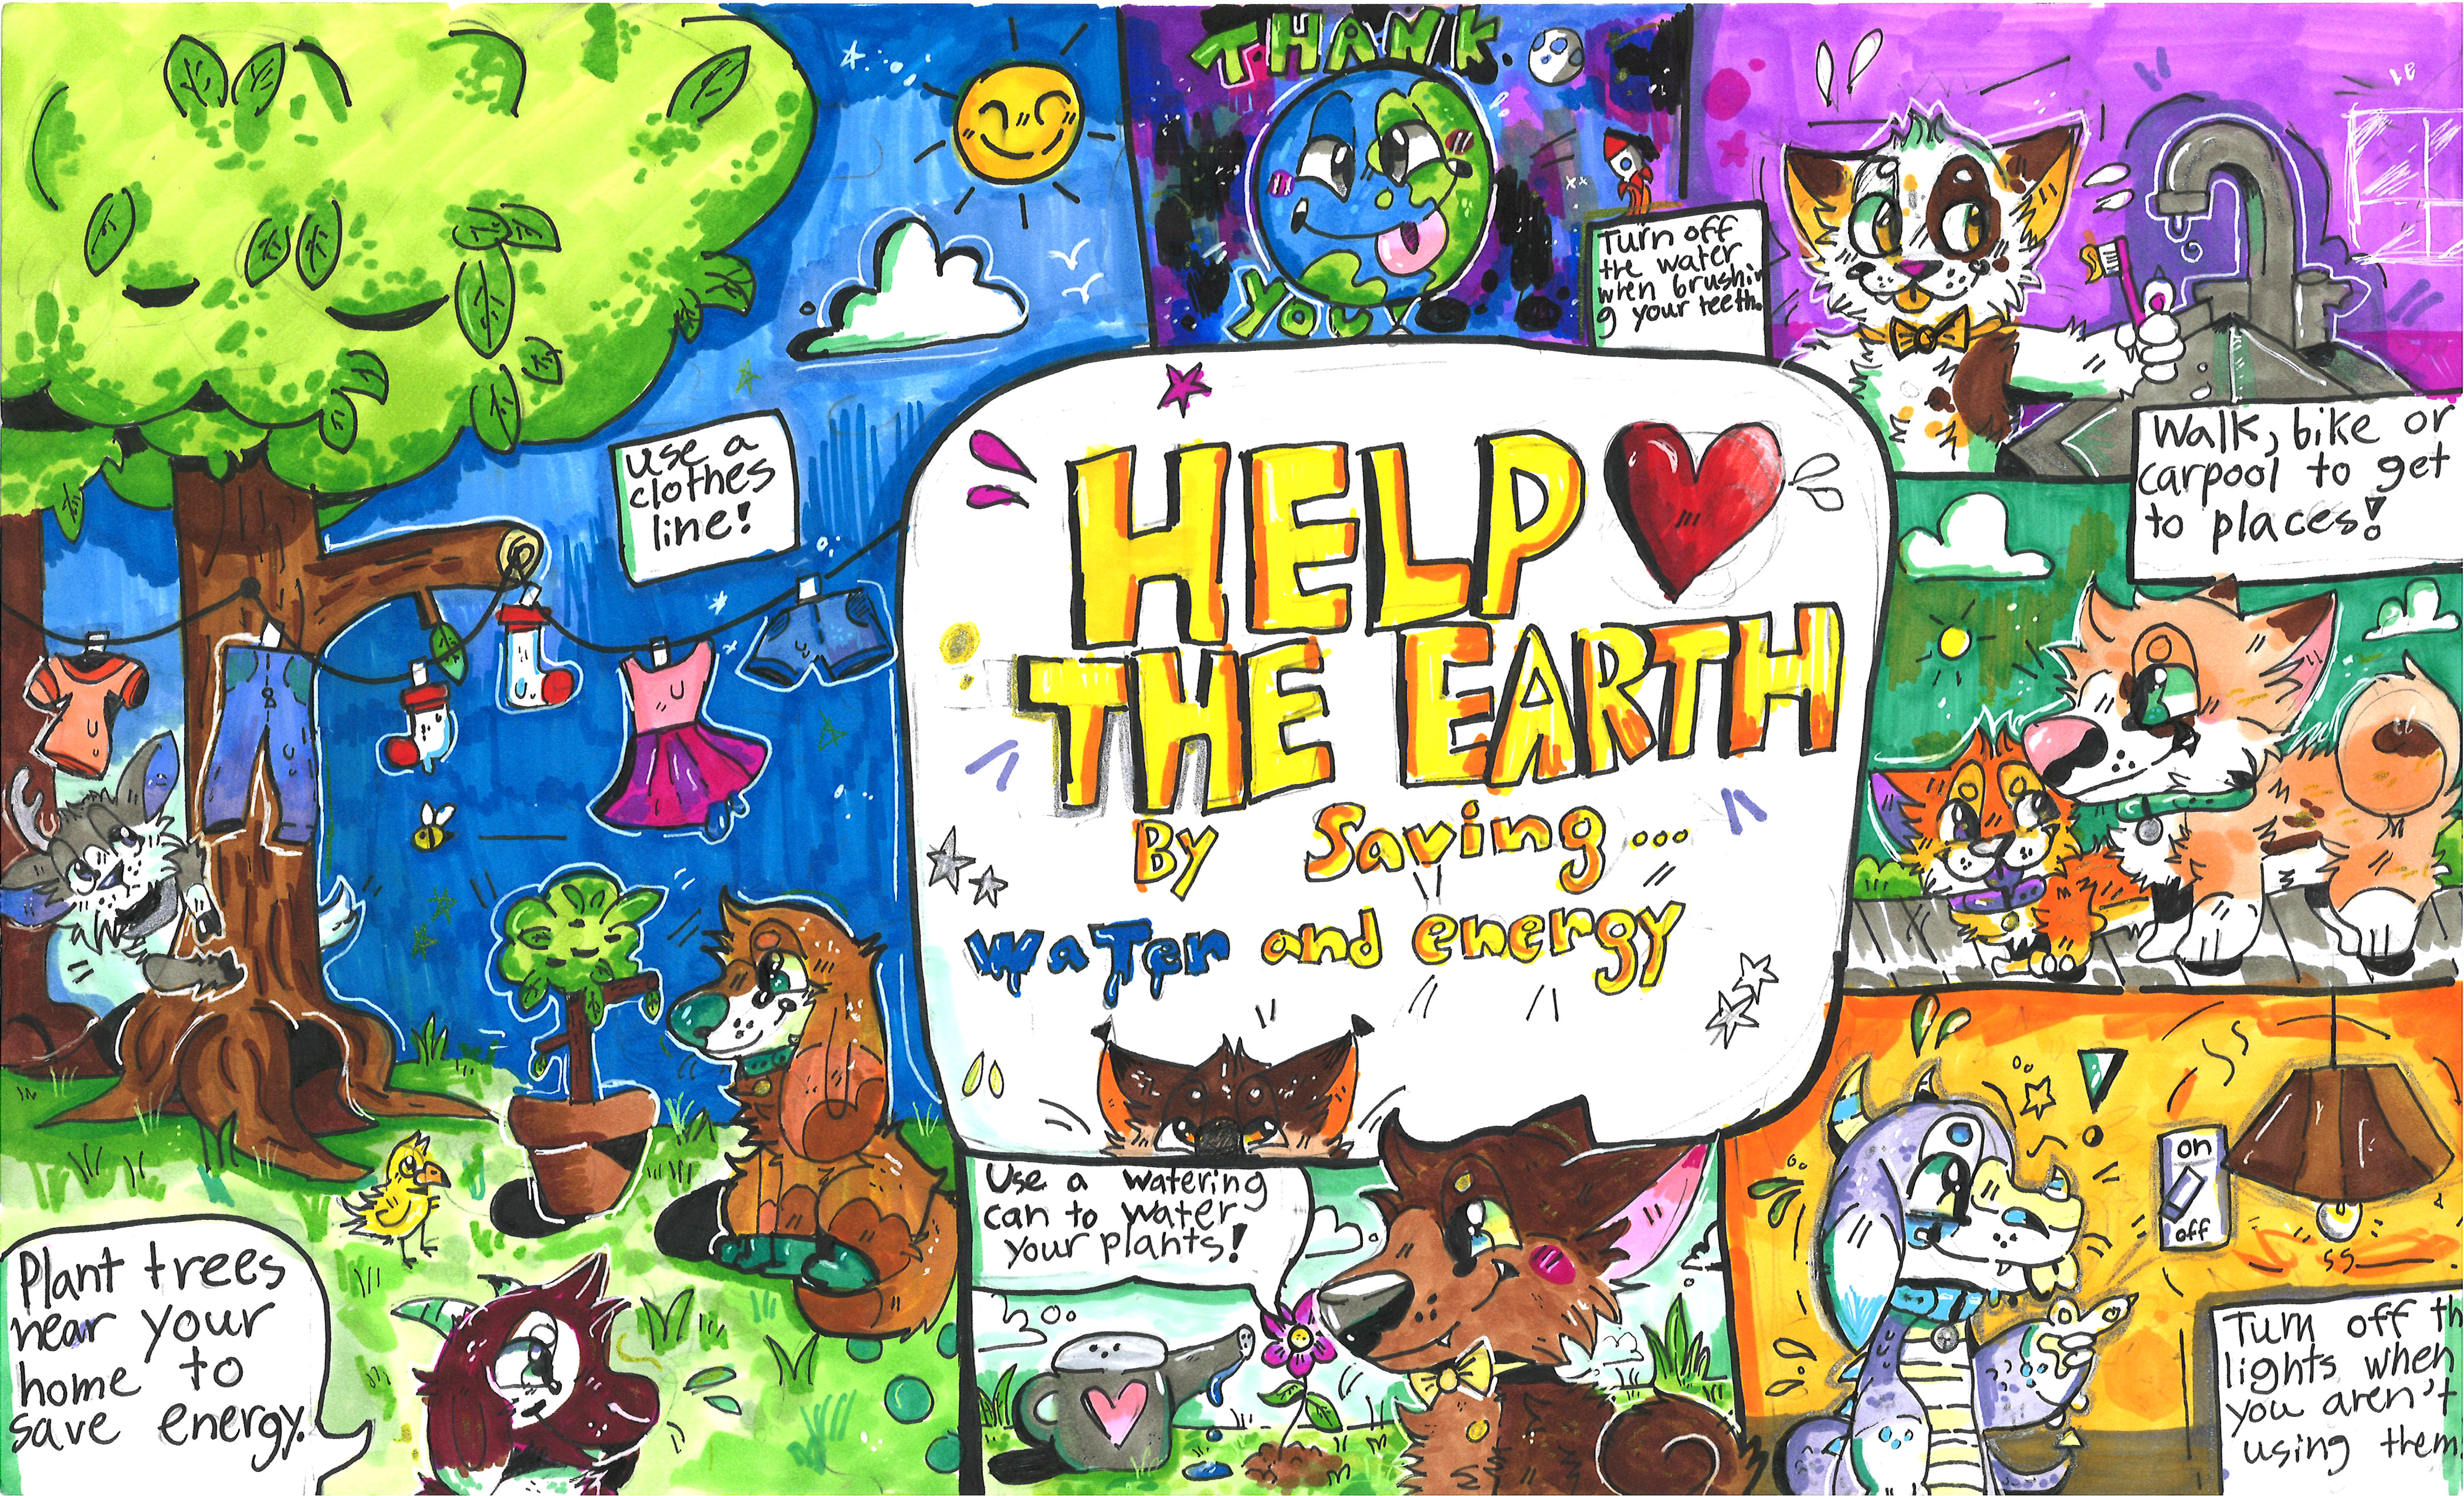 Student Poster Contest Citizens Energy Group